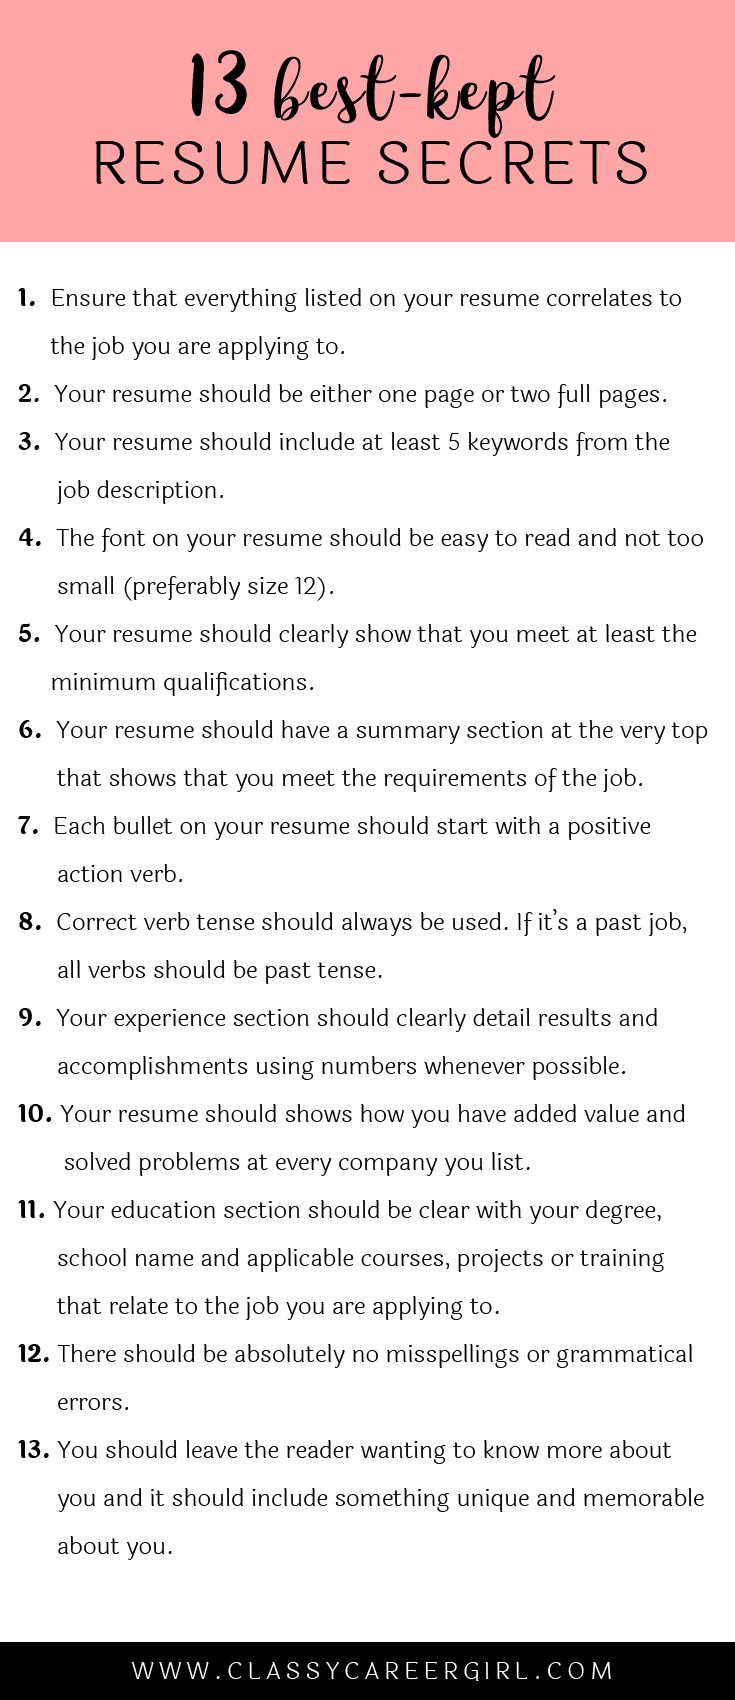 17 best ideas about resume builder resume job these are some great key points to consider when creating a professional resume many of them i was already aware of some are new